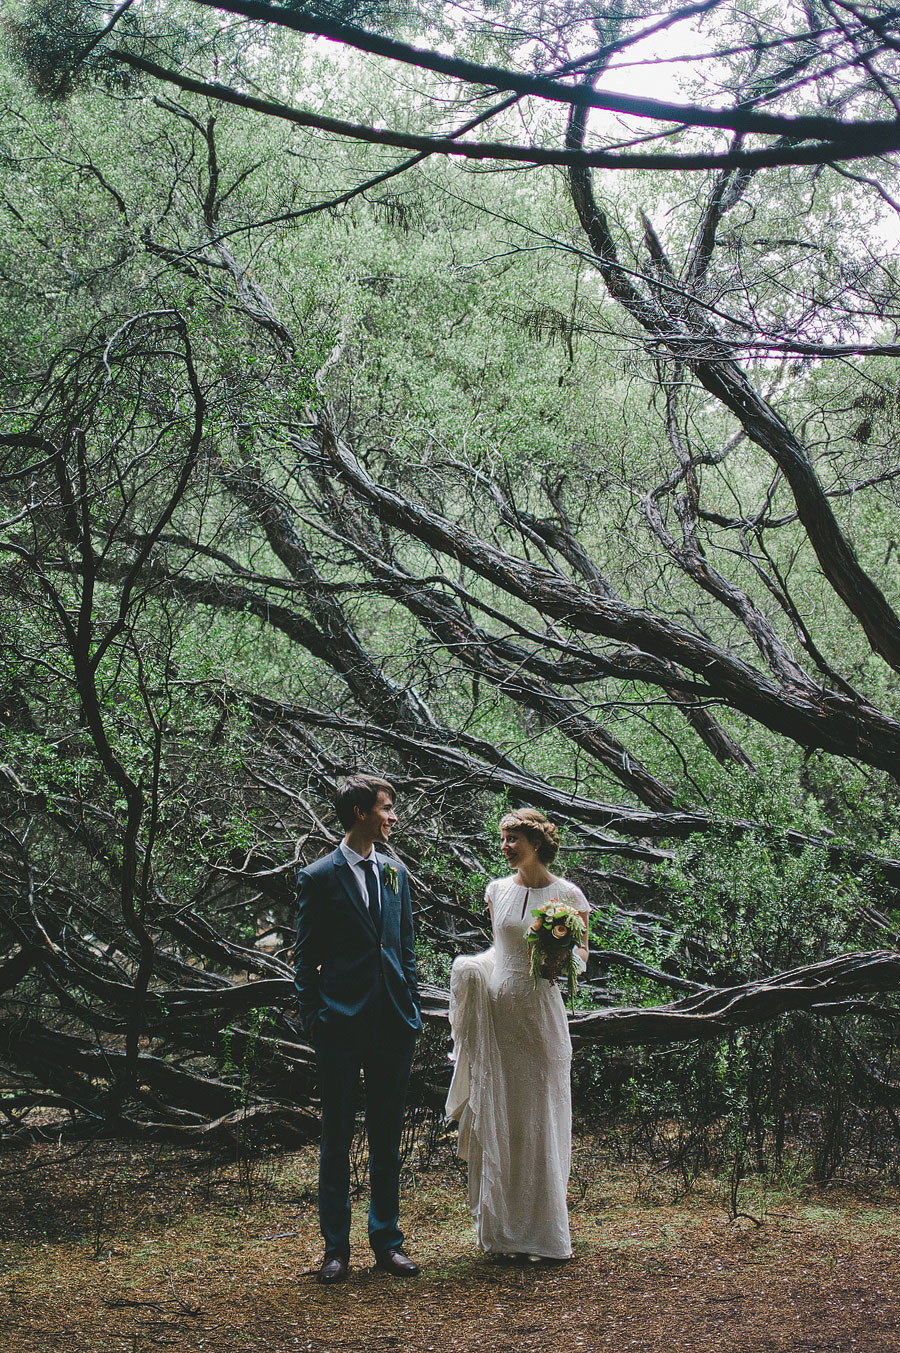 Bride and groom in the woods - Lorne, Melbourne